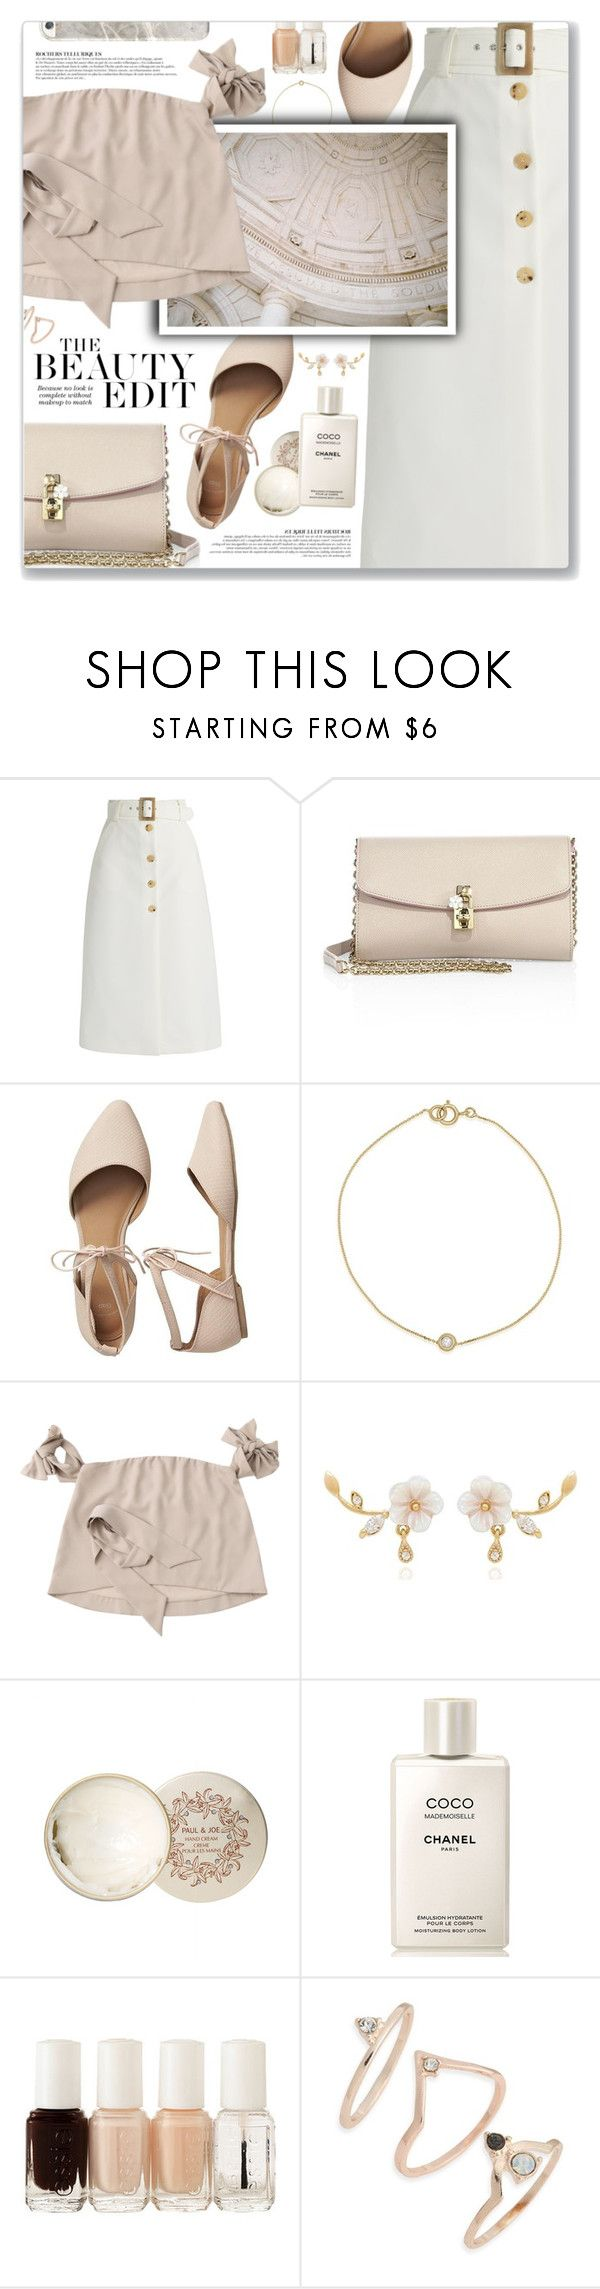 """See You Soon, Coldplay"" by blendasantos ❤ liked on Polyvore featuring Anja, Bella Freud, Dolce&Gabbana, Gap, Paul & Joe, Chanel, Essie and Topshop"